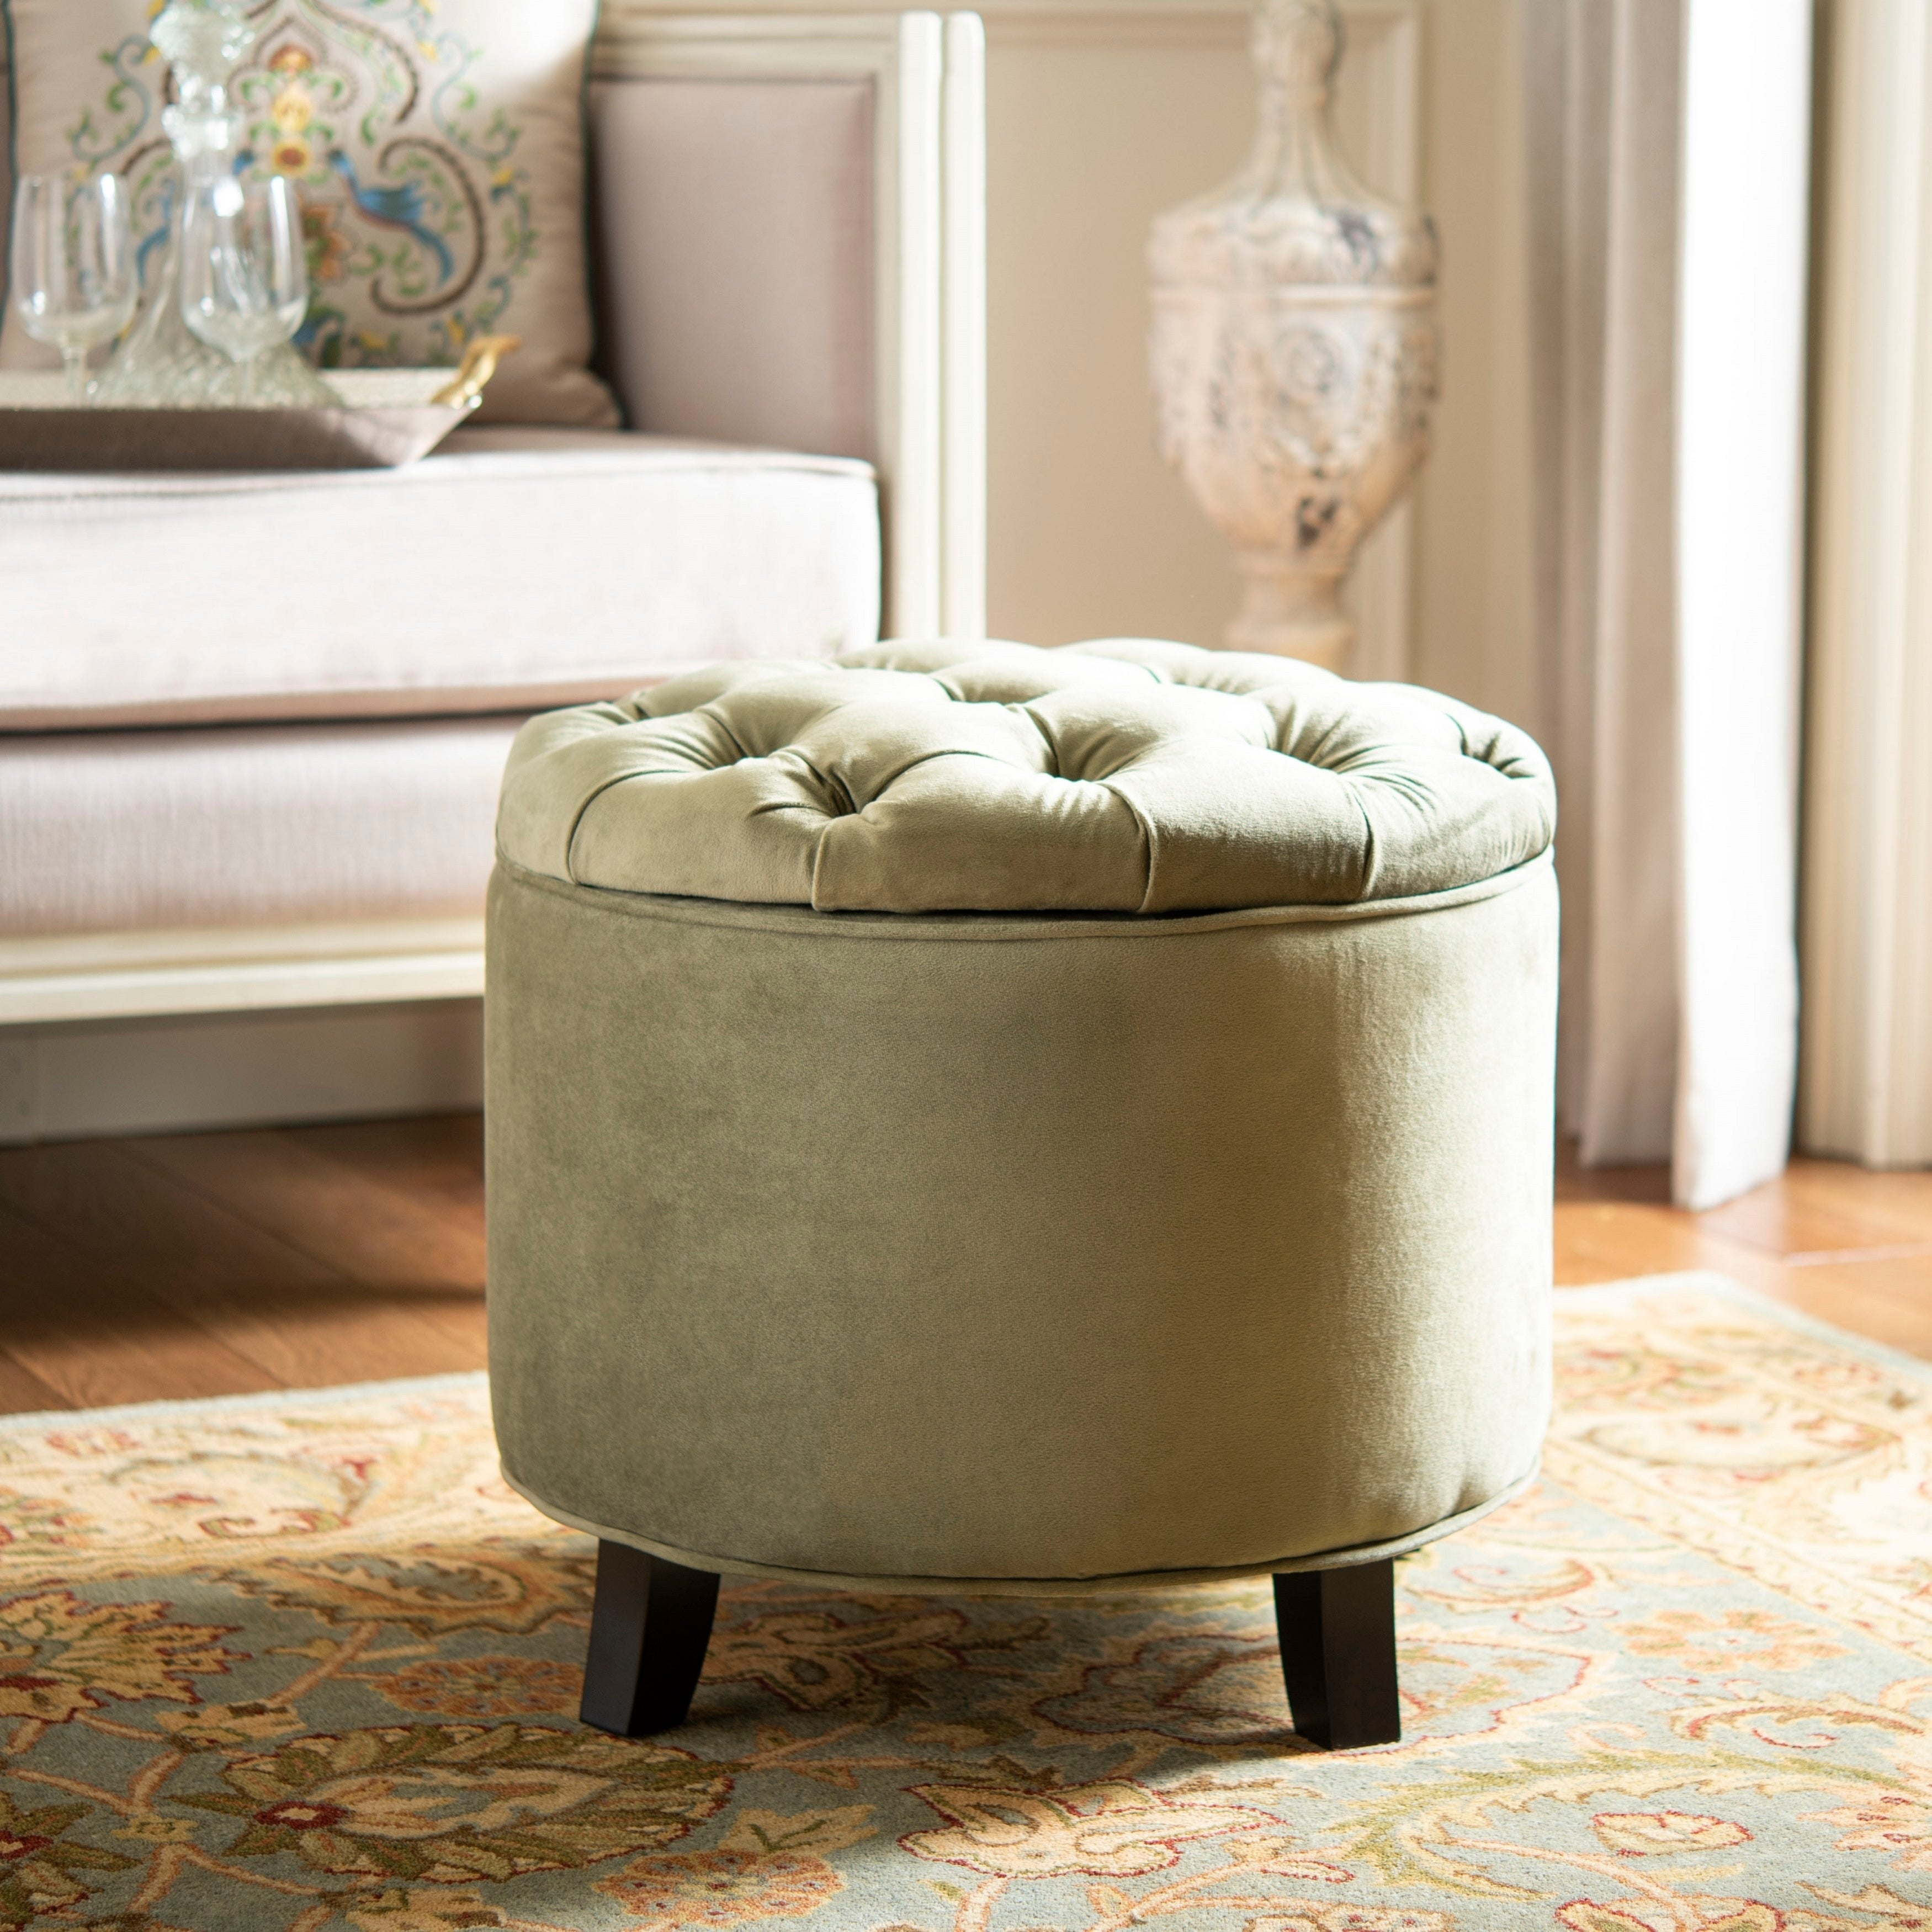 Prime Safavieh Amelia Spruce Tufted Storage Ottoman Gmtry Best Dining Table And Chair Ideas Images Gmtryco